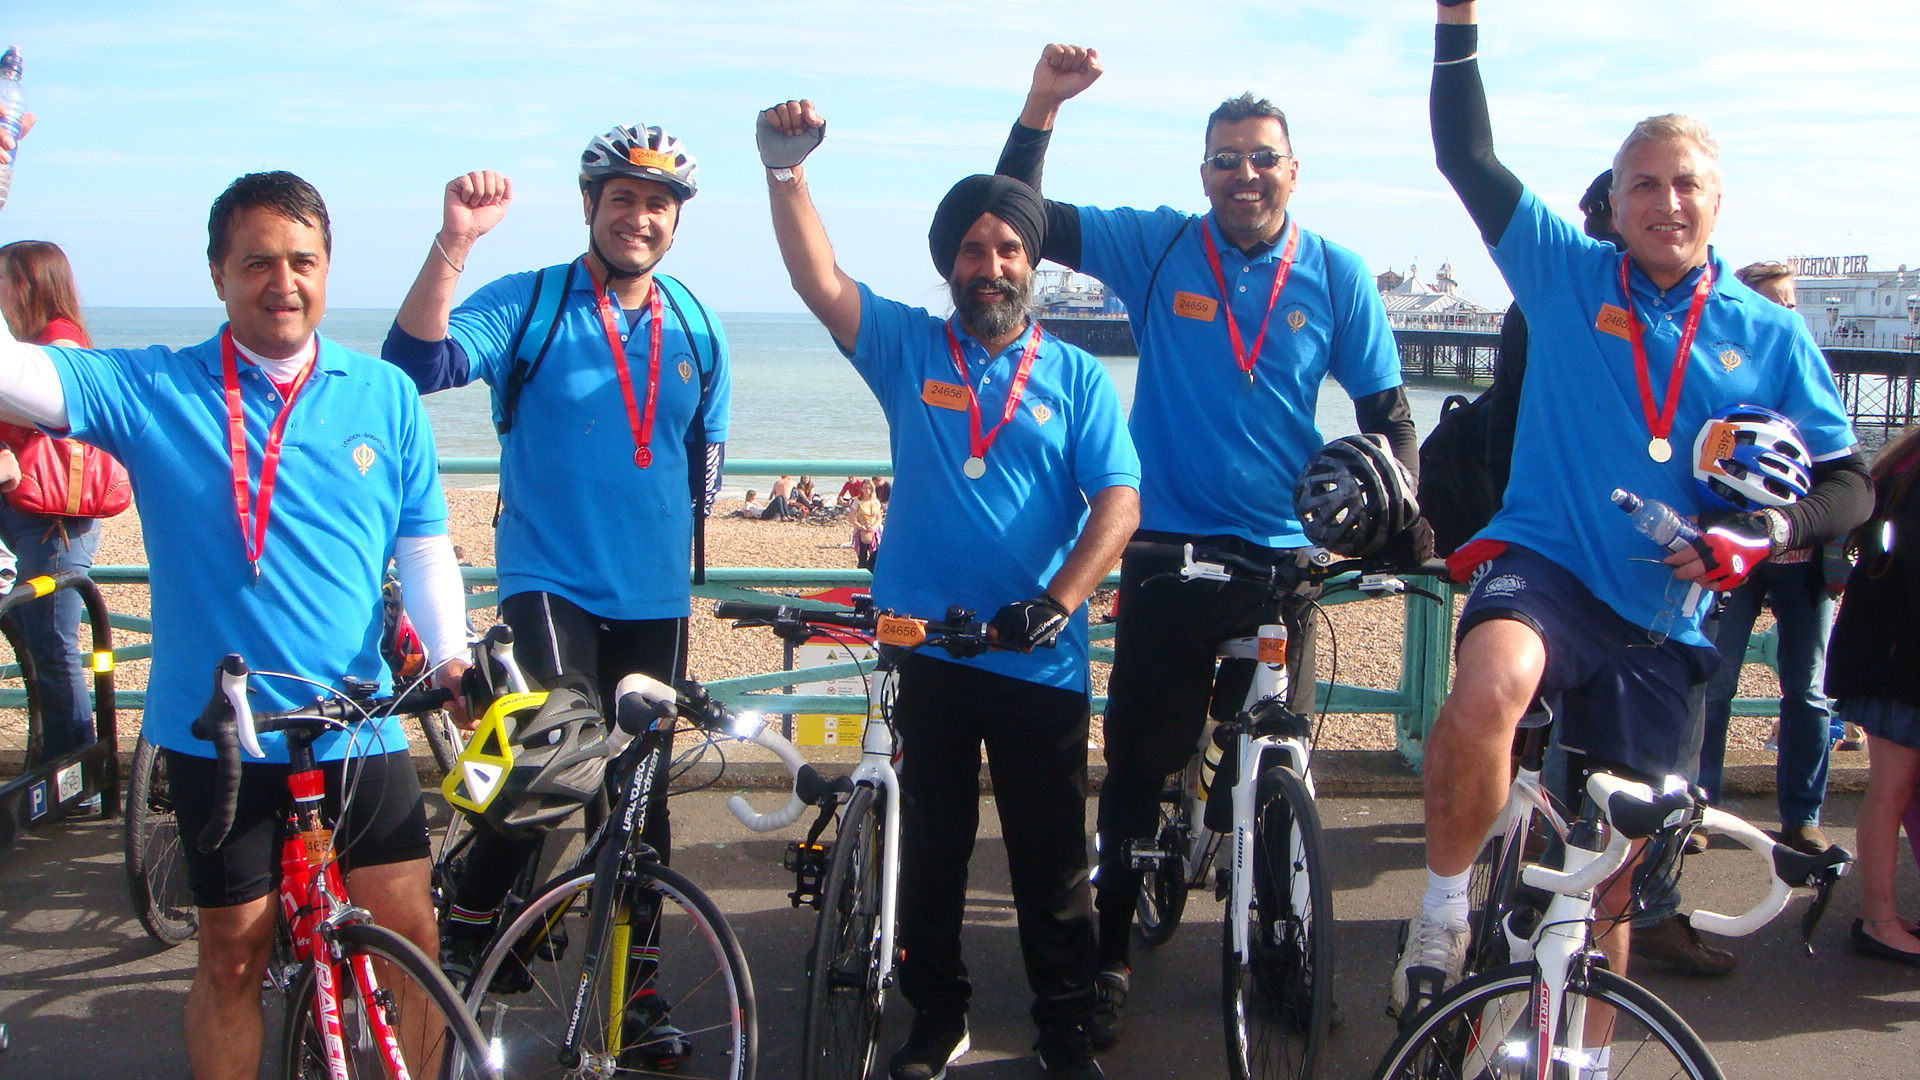 London to Brighton Charity Bike Ride - June 2014 C